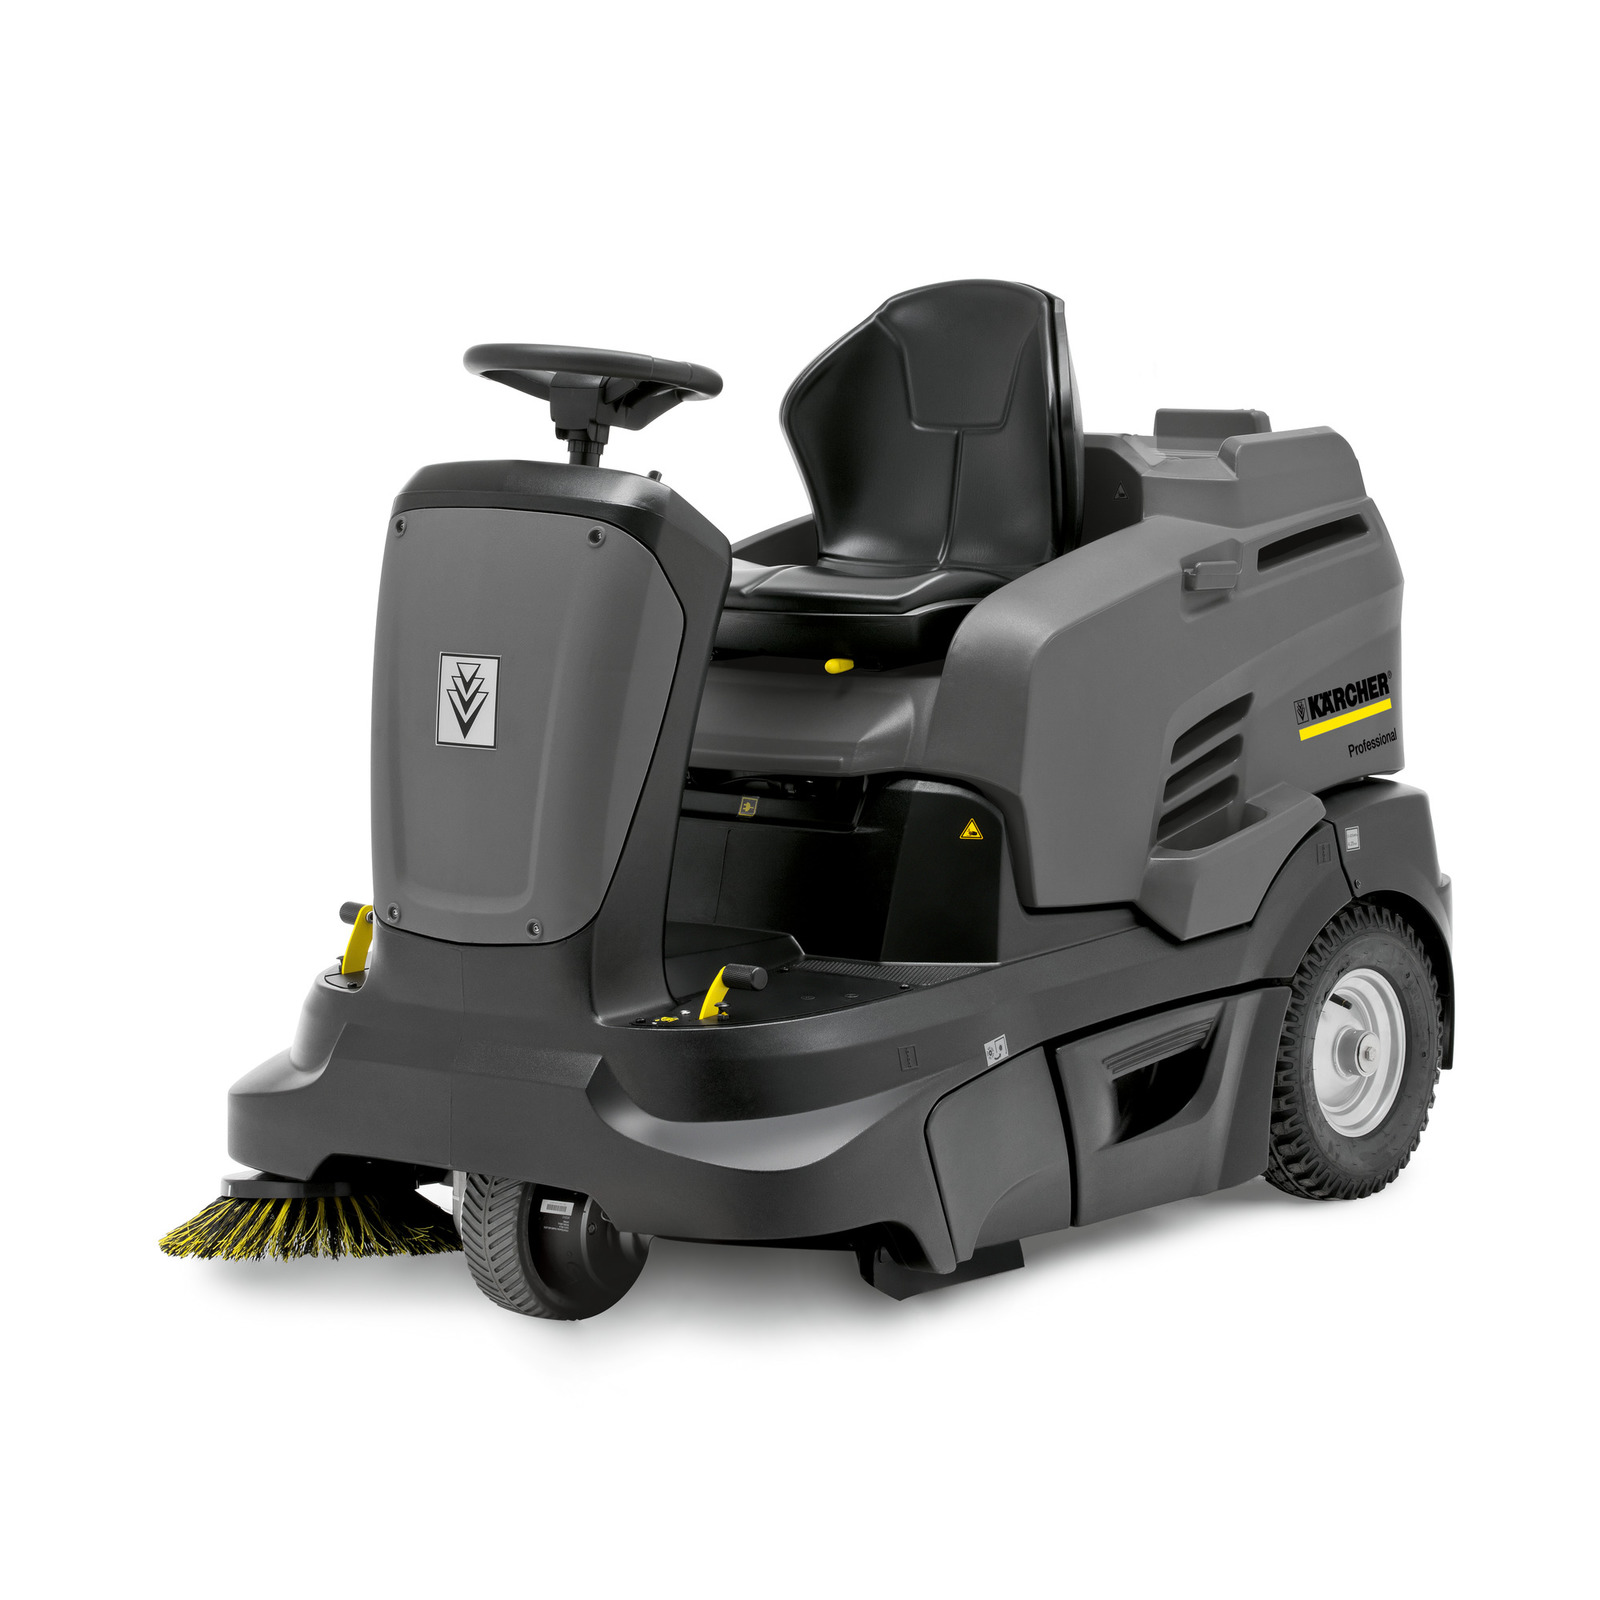 Karcher Small Ride on Sweepers Km 90/60 R Bp